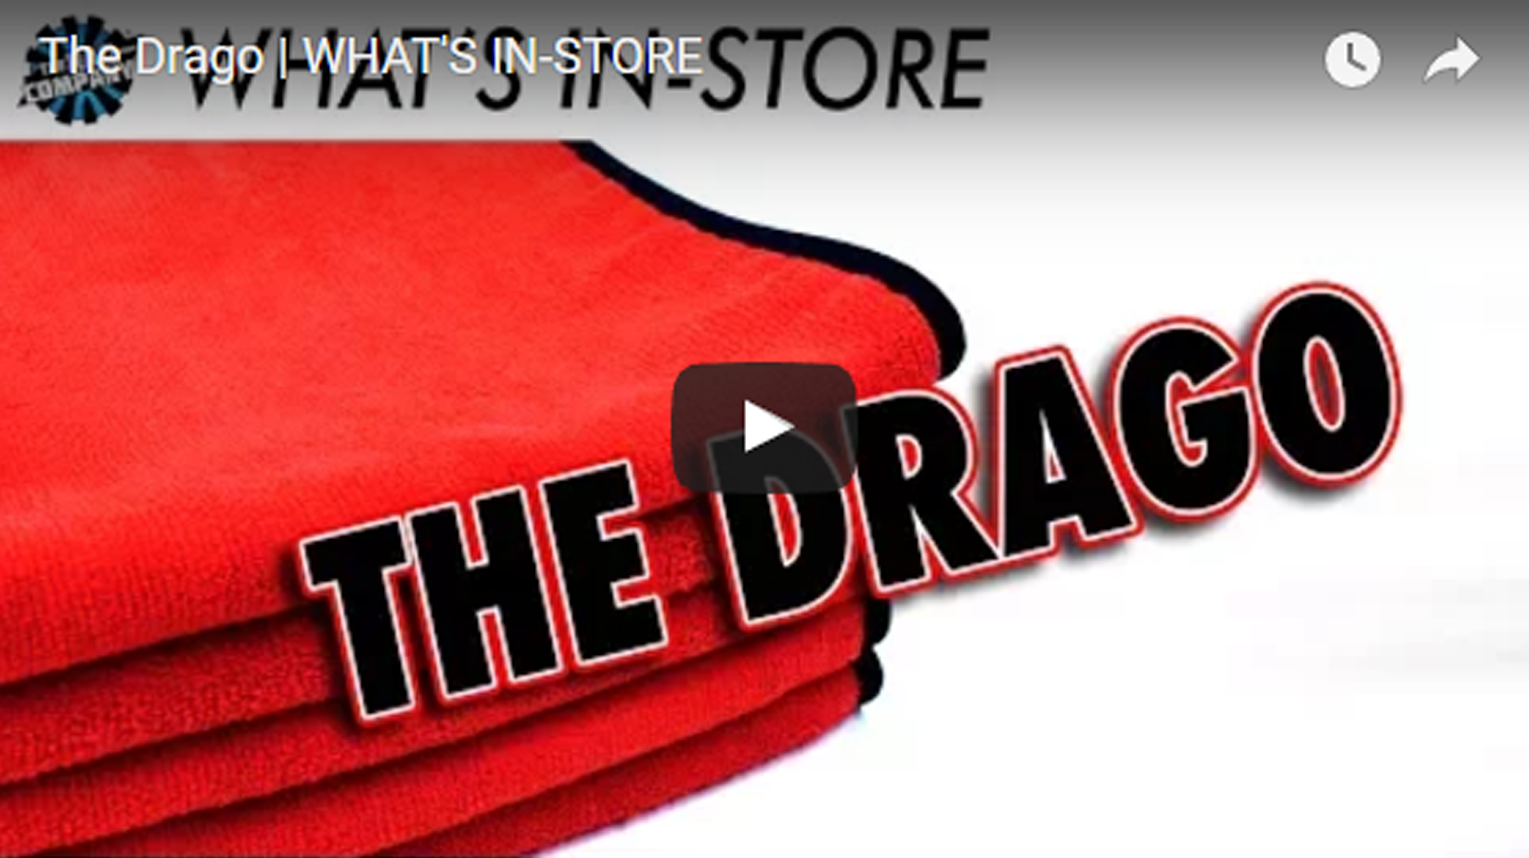 The Drago | WHAT'S IN-STORE